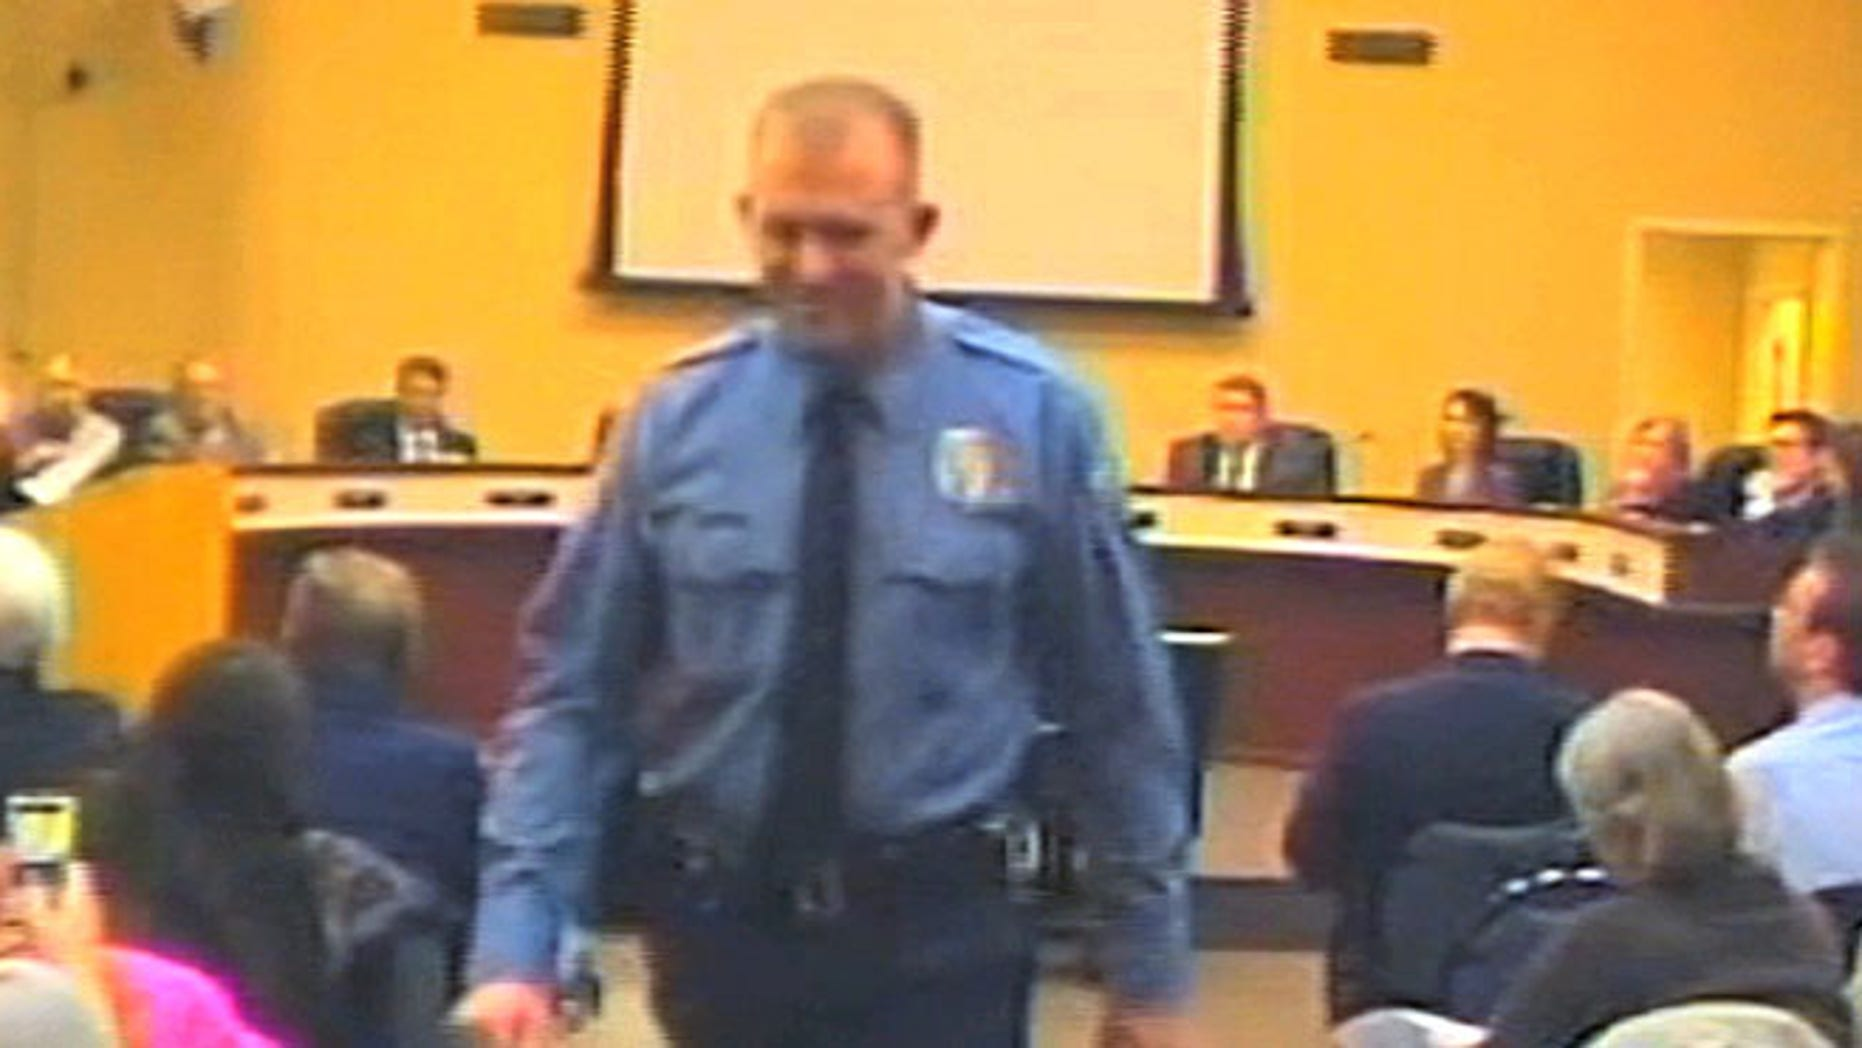 Feb. 11, 2014: Officer Darren Wilson attends a city council meeting in Ferguson